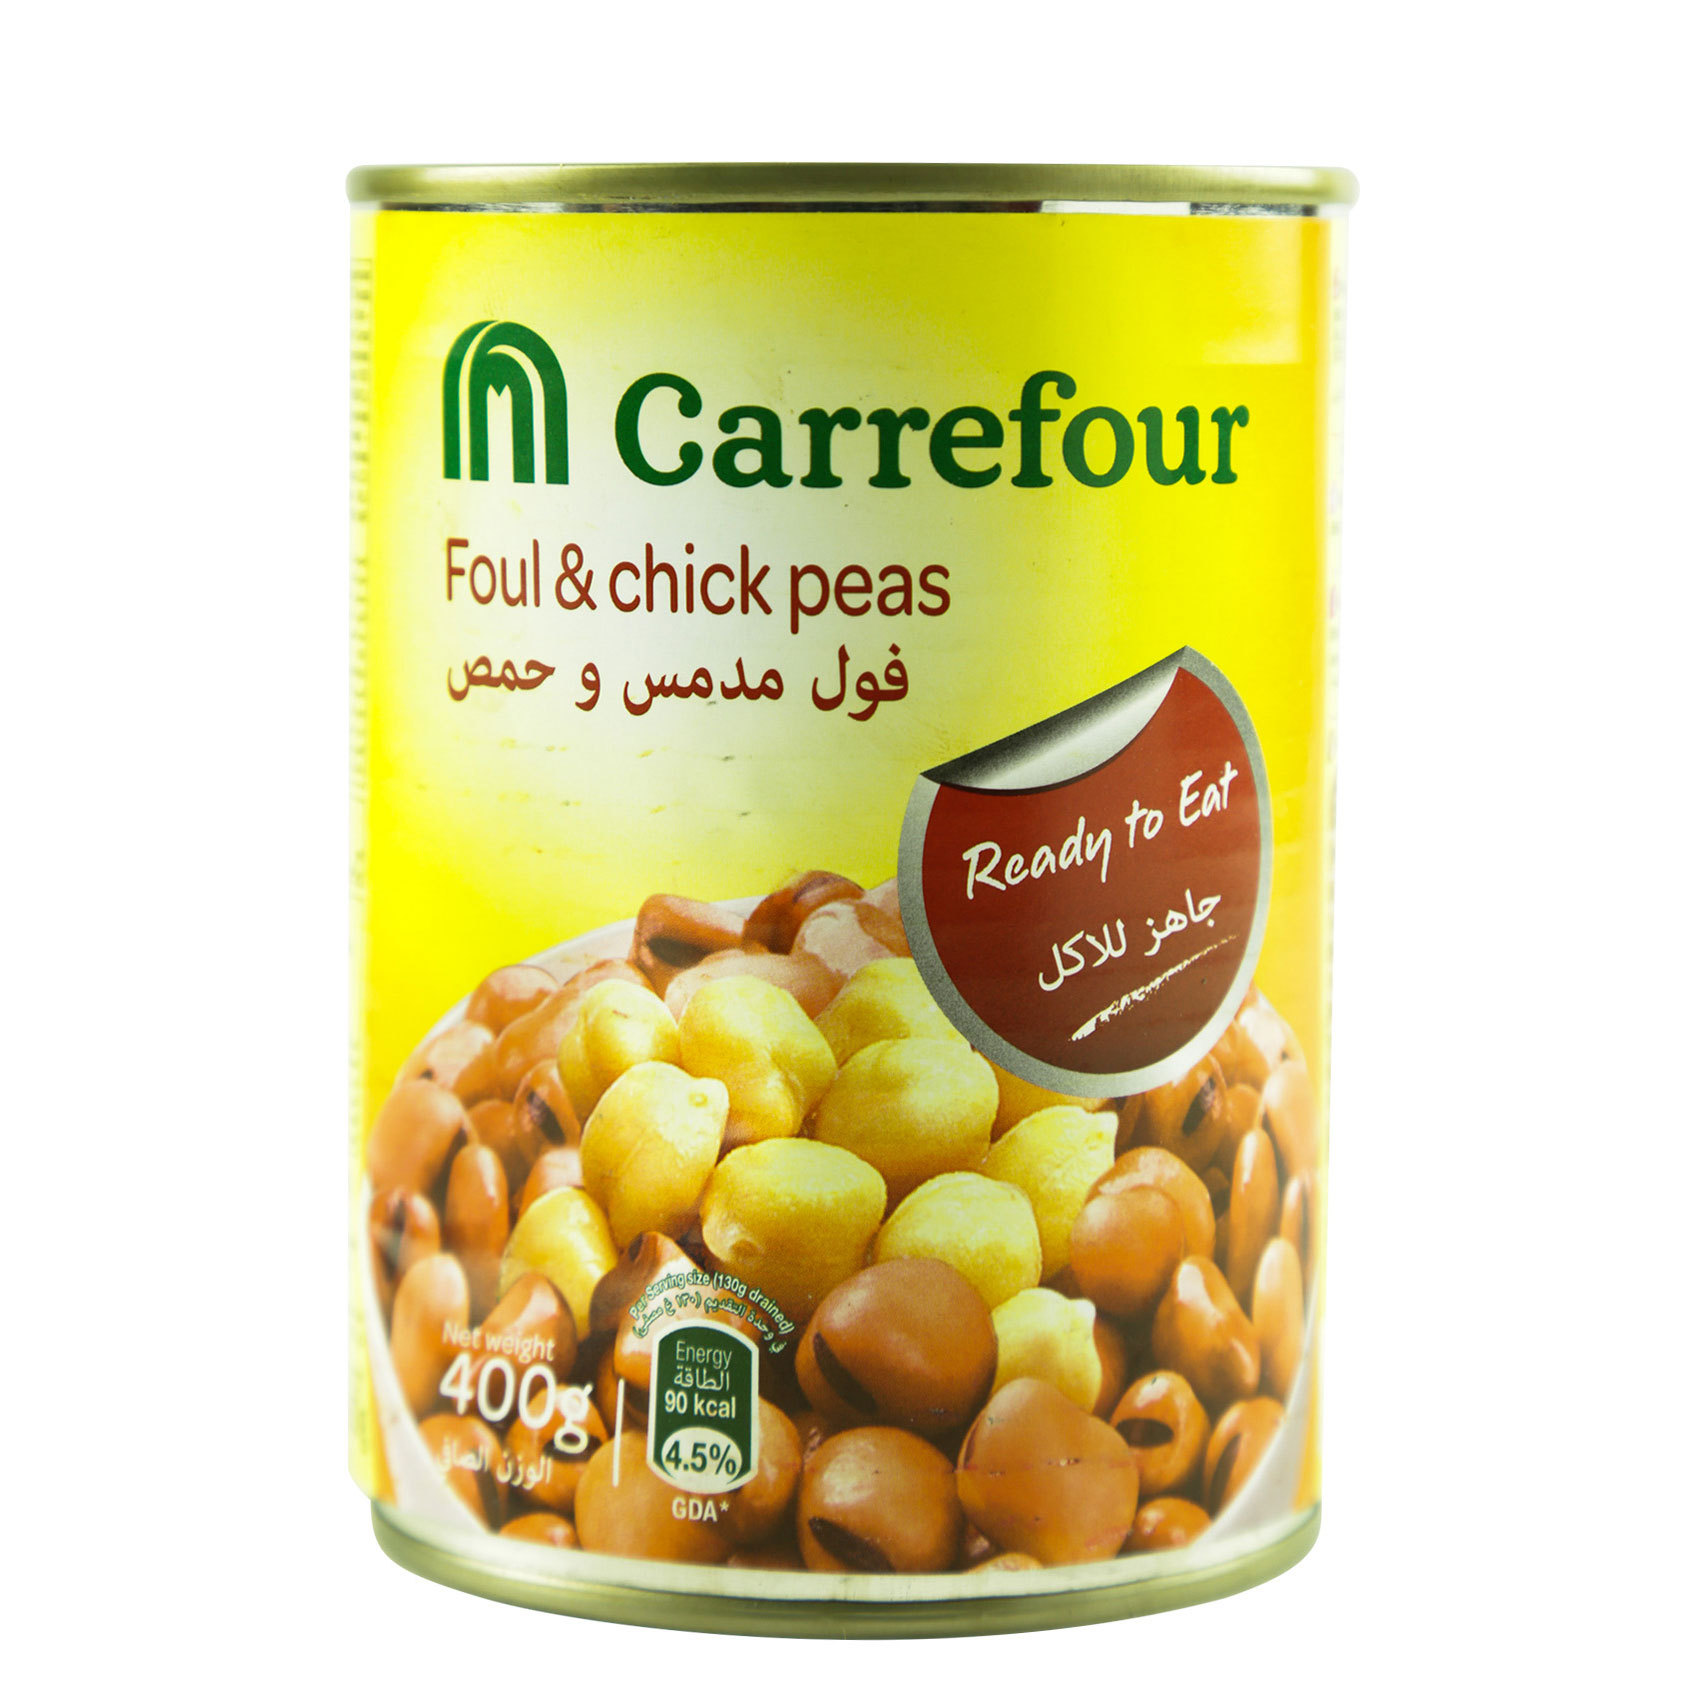 CRF FOUL & CHICK PEAS 400G